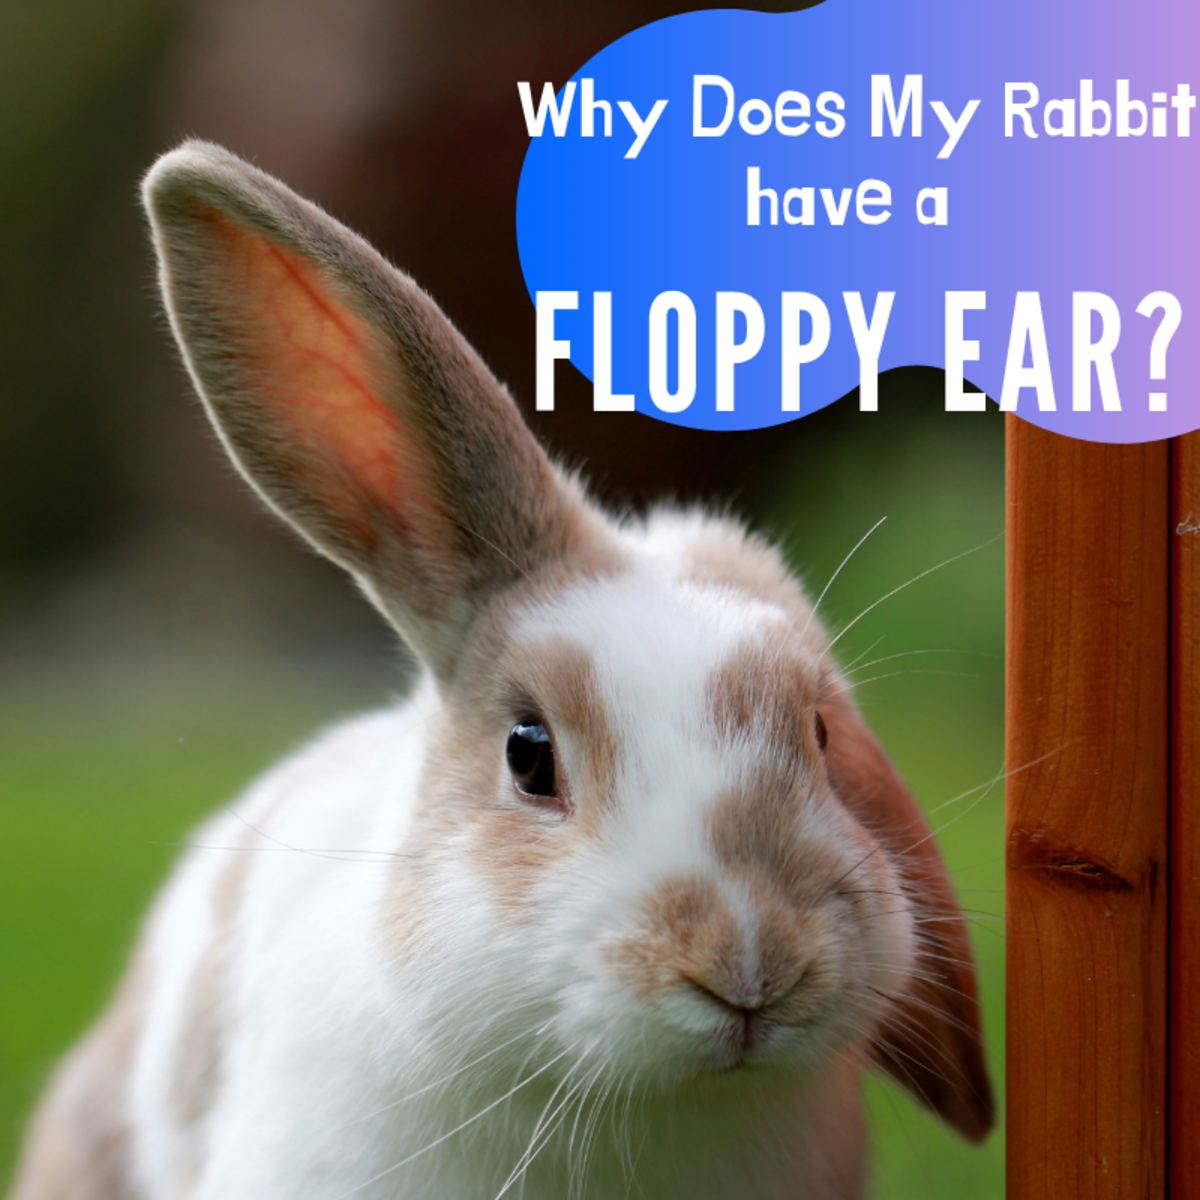 Why Is My Rabbit's Ear Floppy? Lop Genes and Other Causes